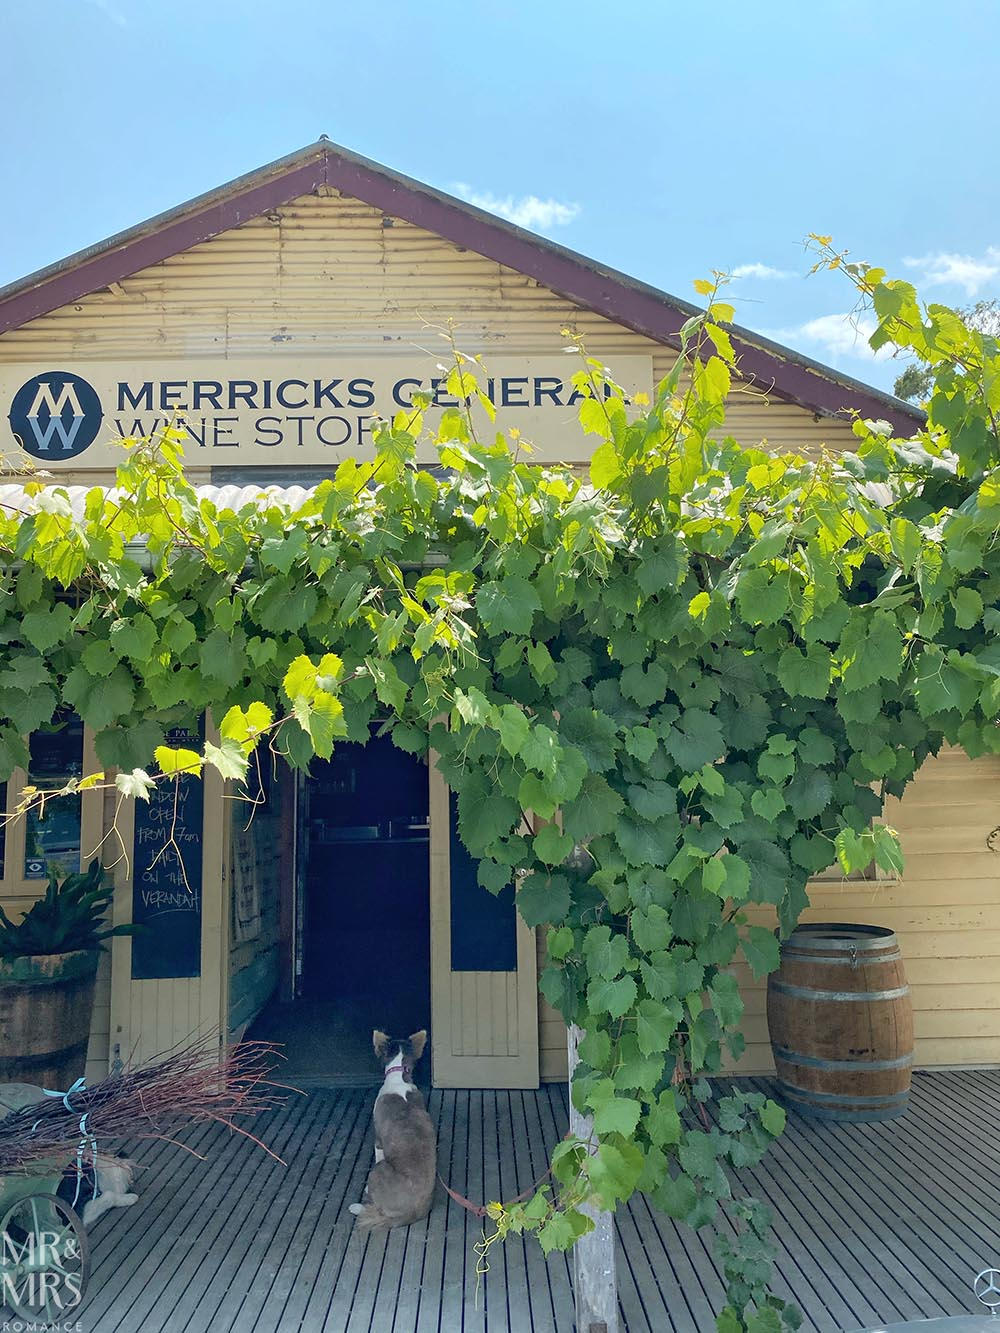 Mornington Peninsula wineries -  Merricks General Wine Store